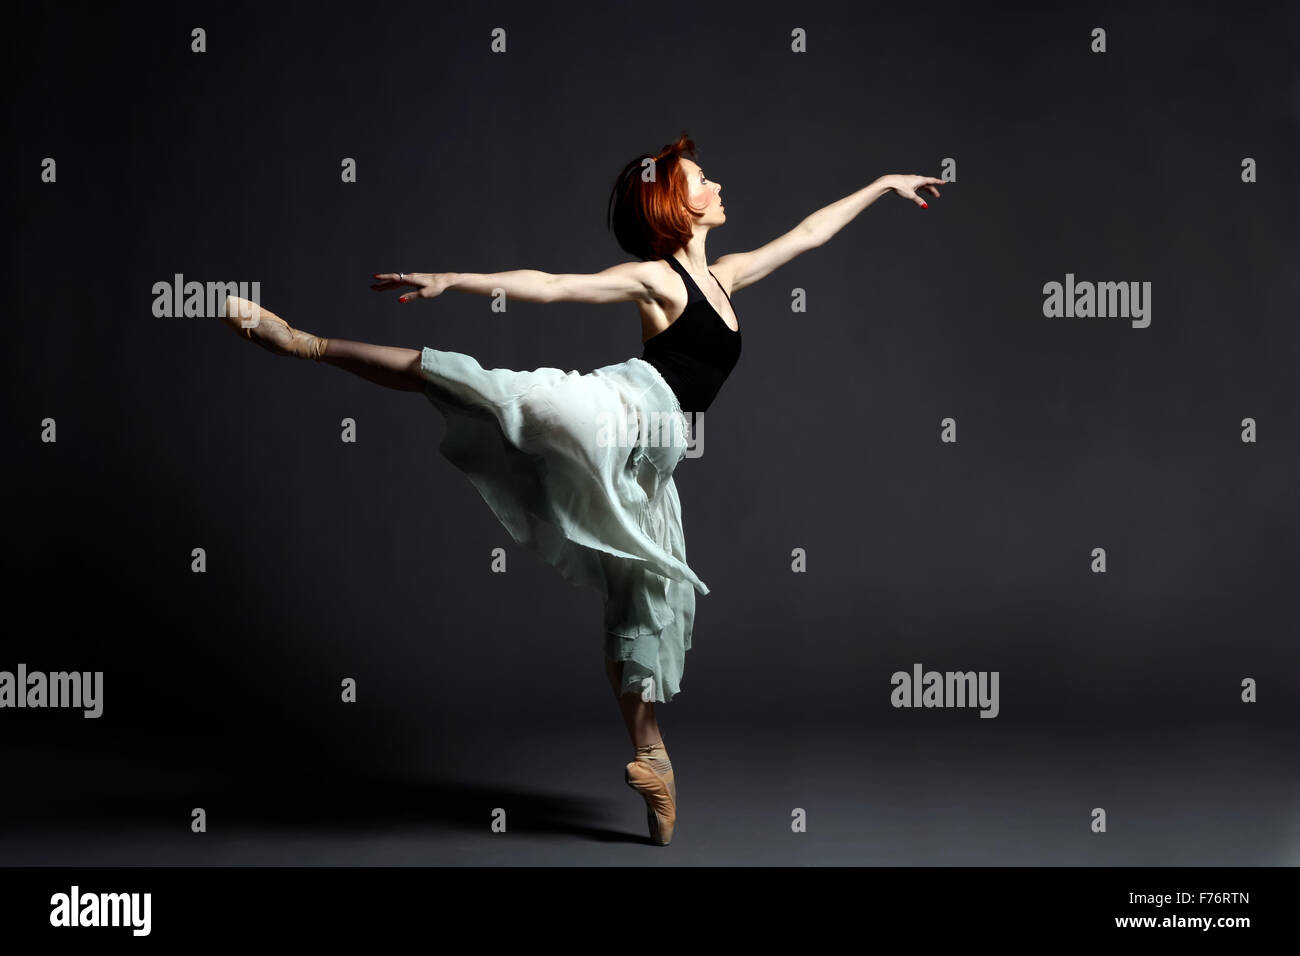 Ballerine performing on stage Banque D'Images